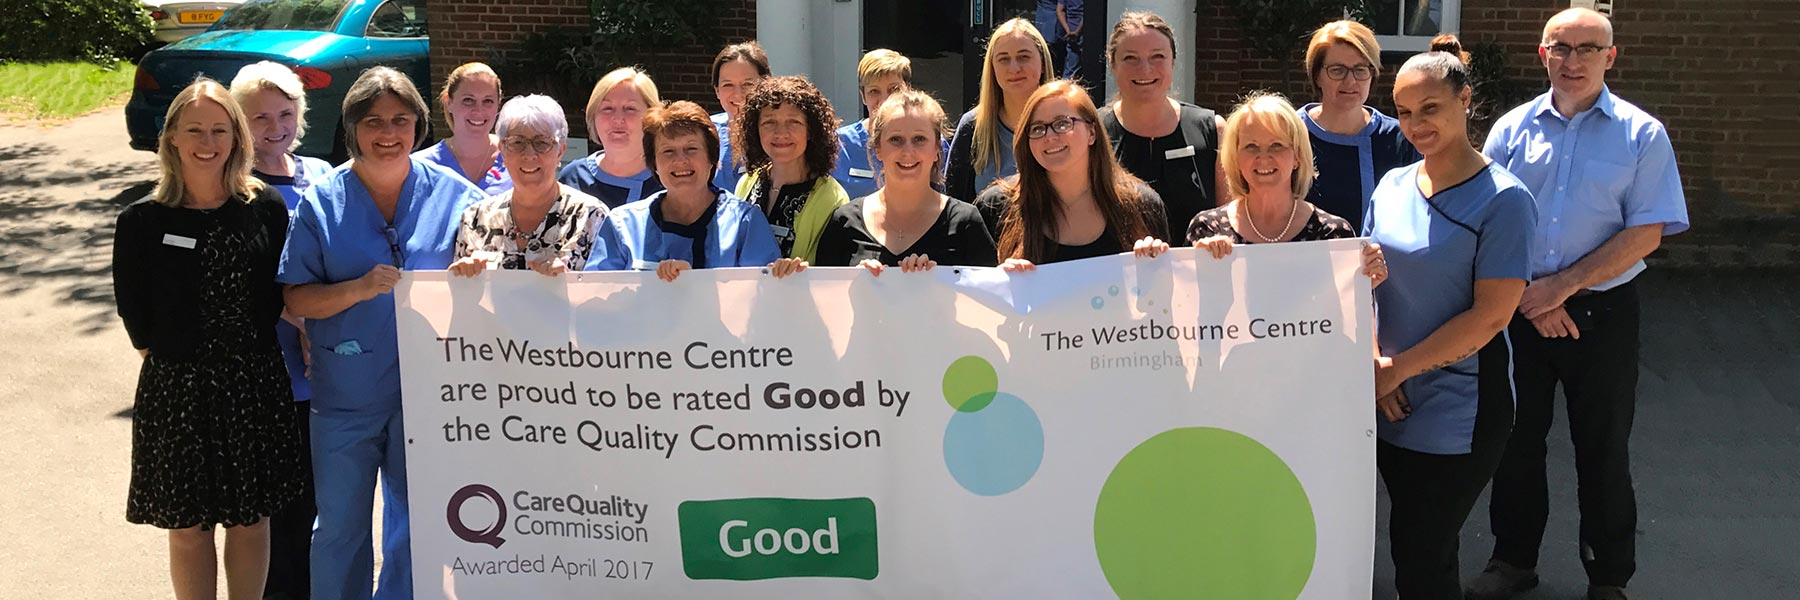 Westbourne Centre Rated Good by CareQuality Commission